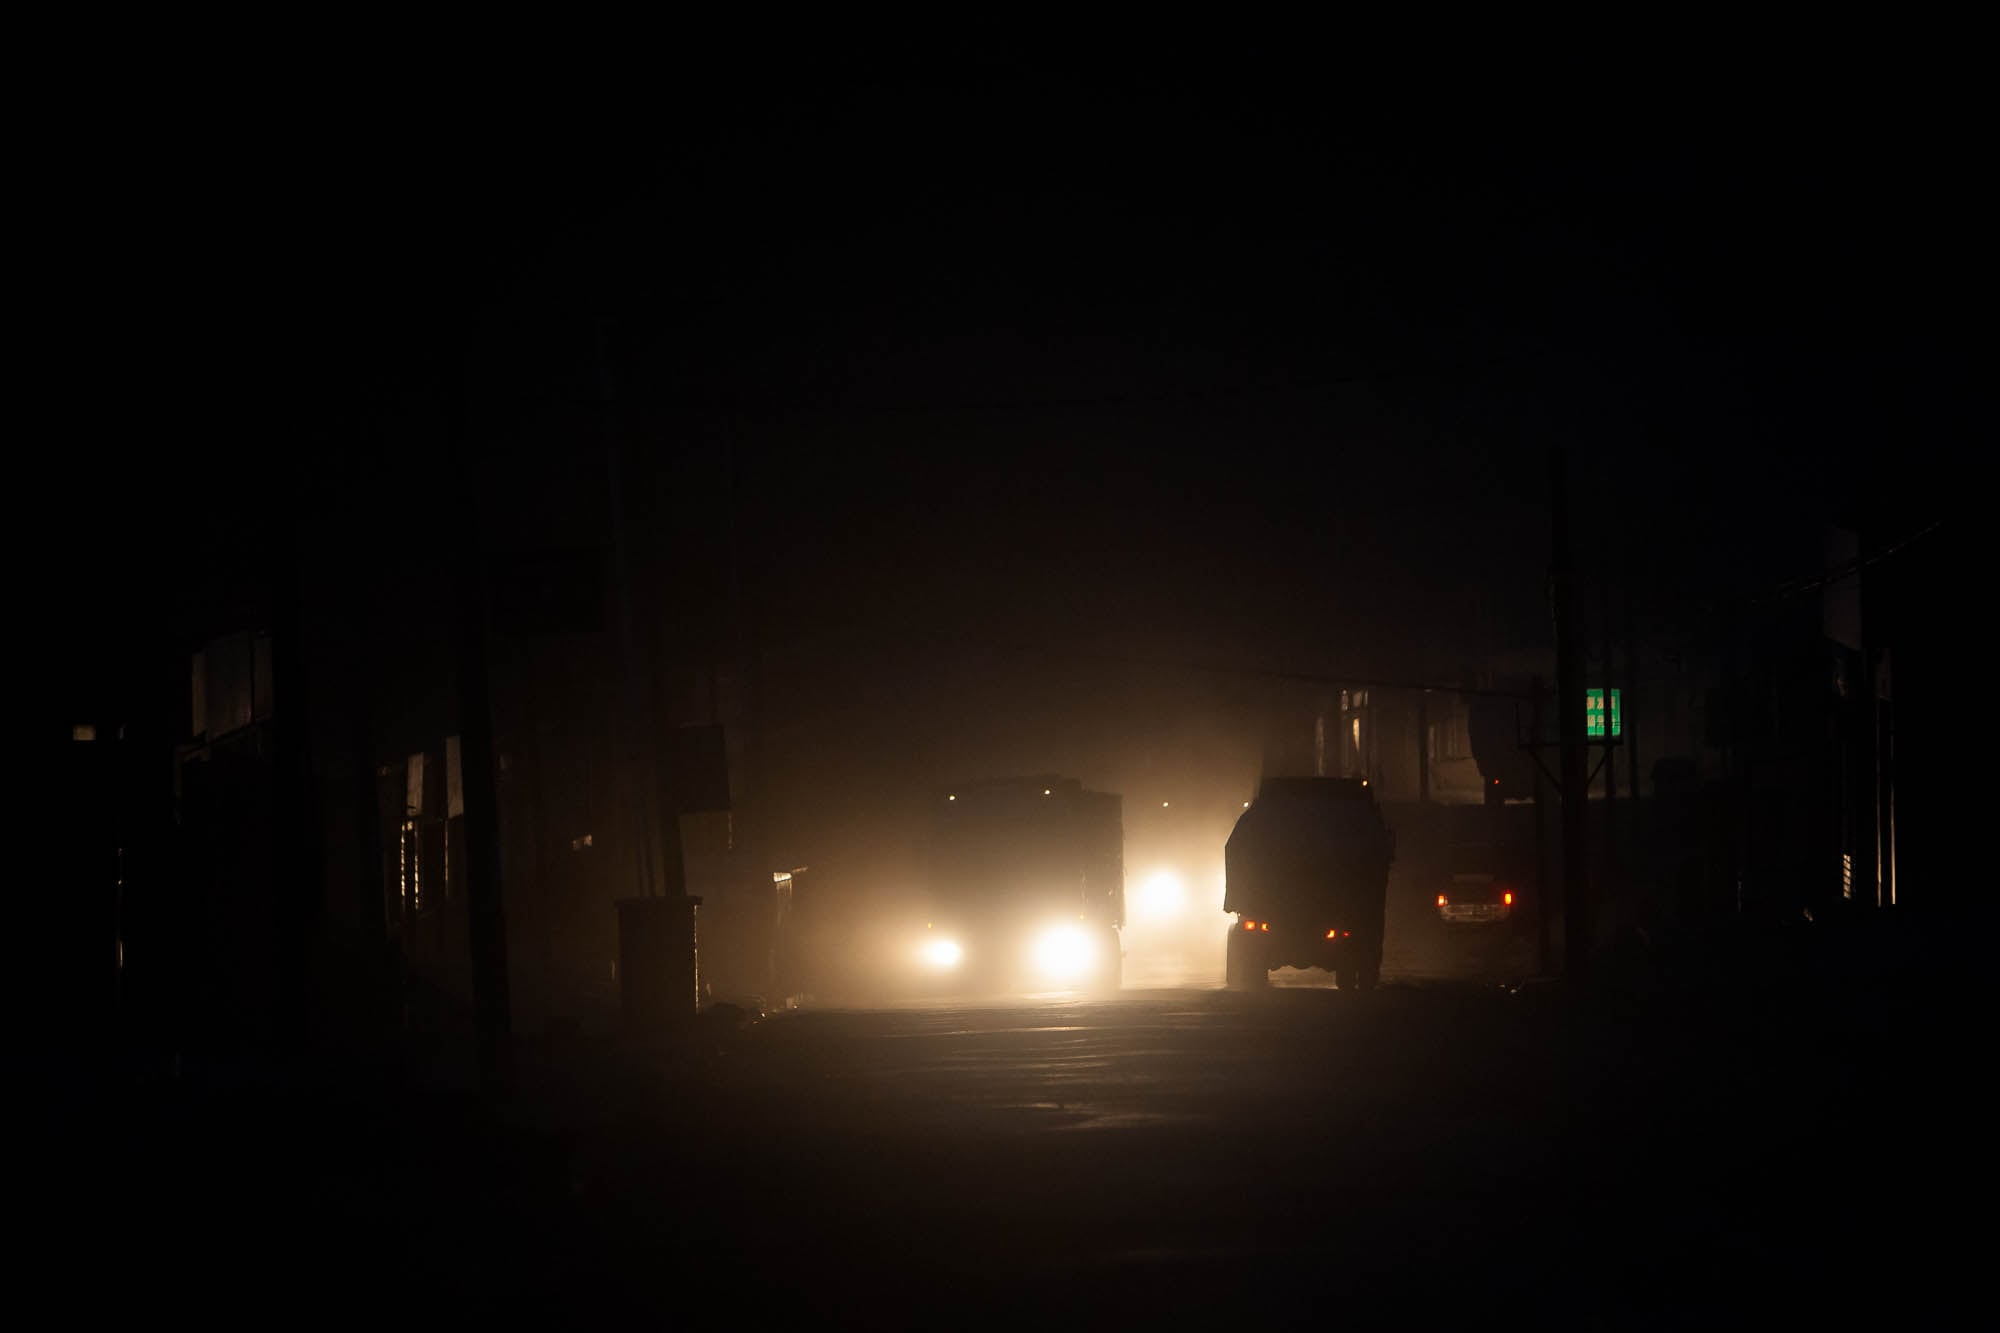 trucks in the darkness